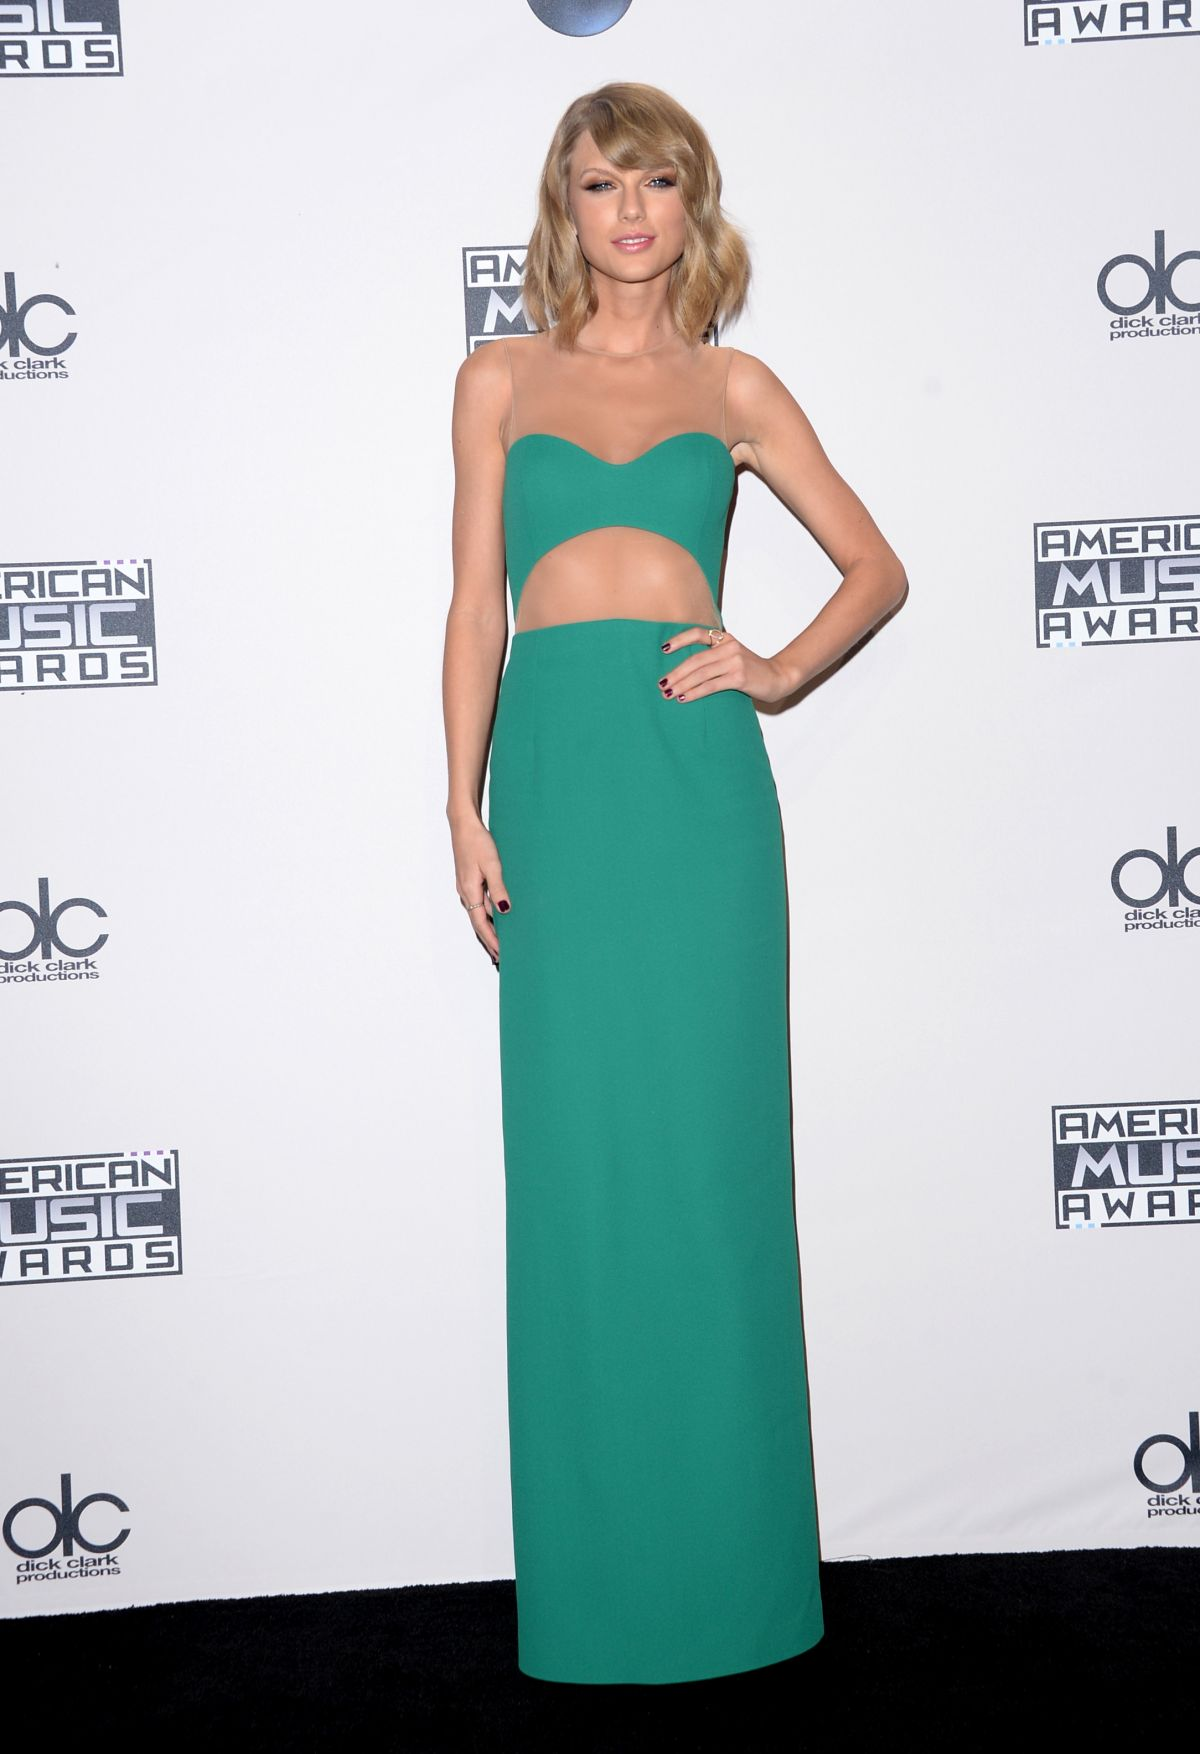 talor-swift-at-2014-american-music-awards-in-los-angeles_19